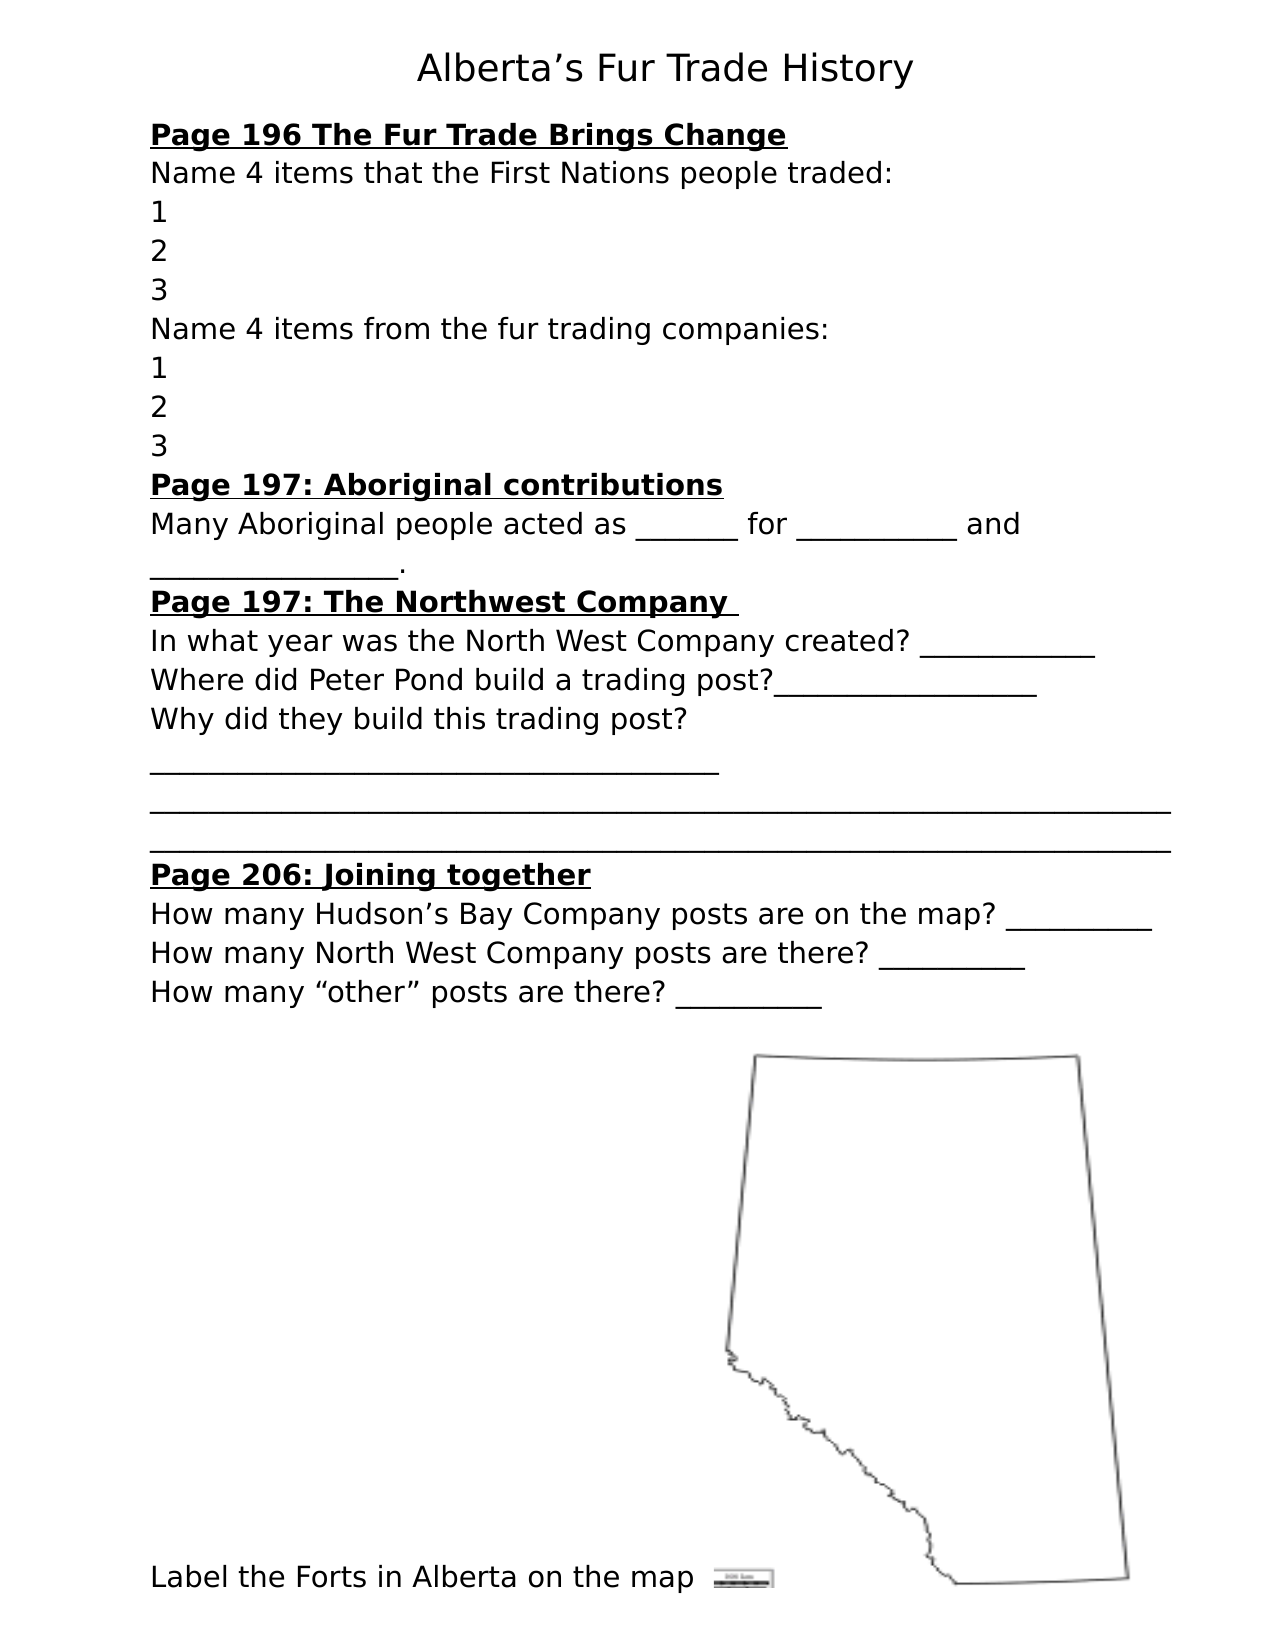 medium resolution of Our Alberta Textbook Fur Trade Resource Preview   Social studies